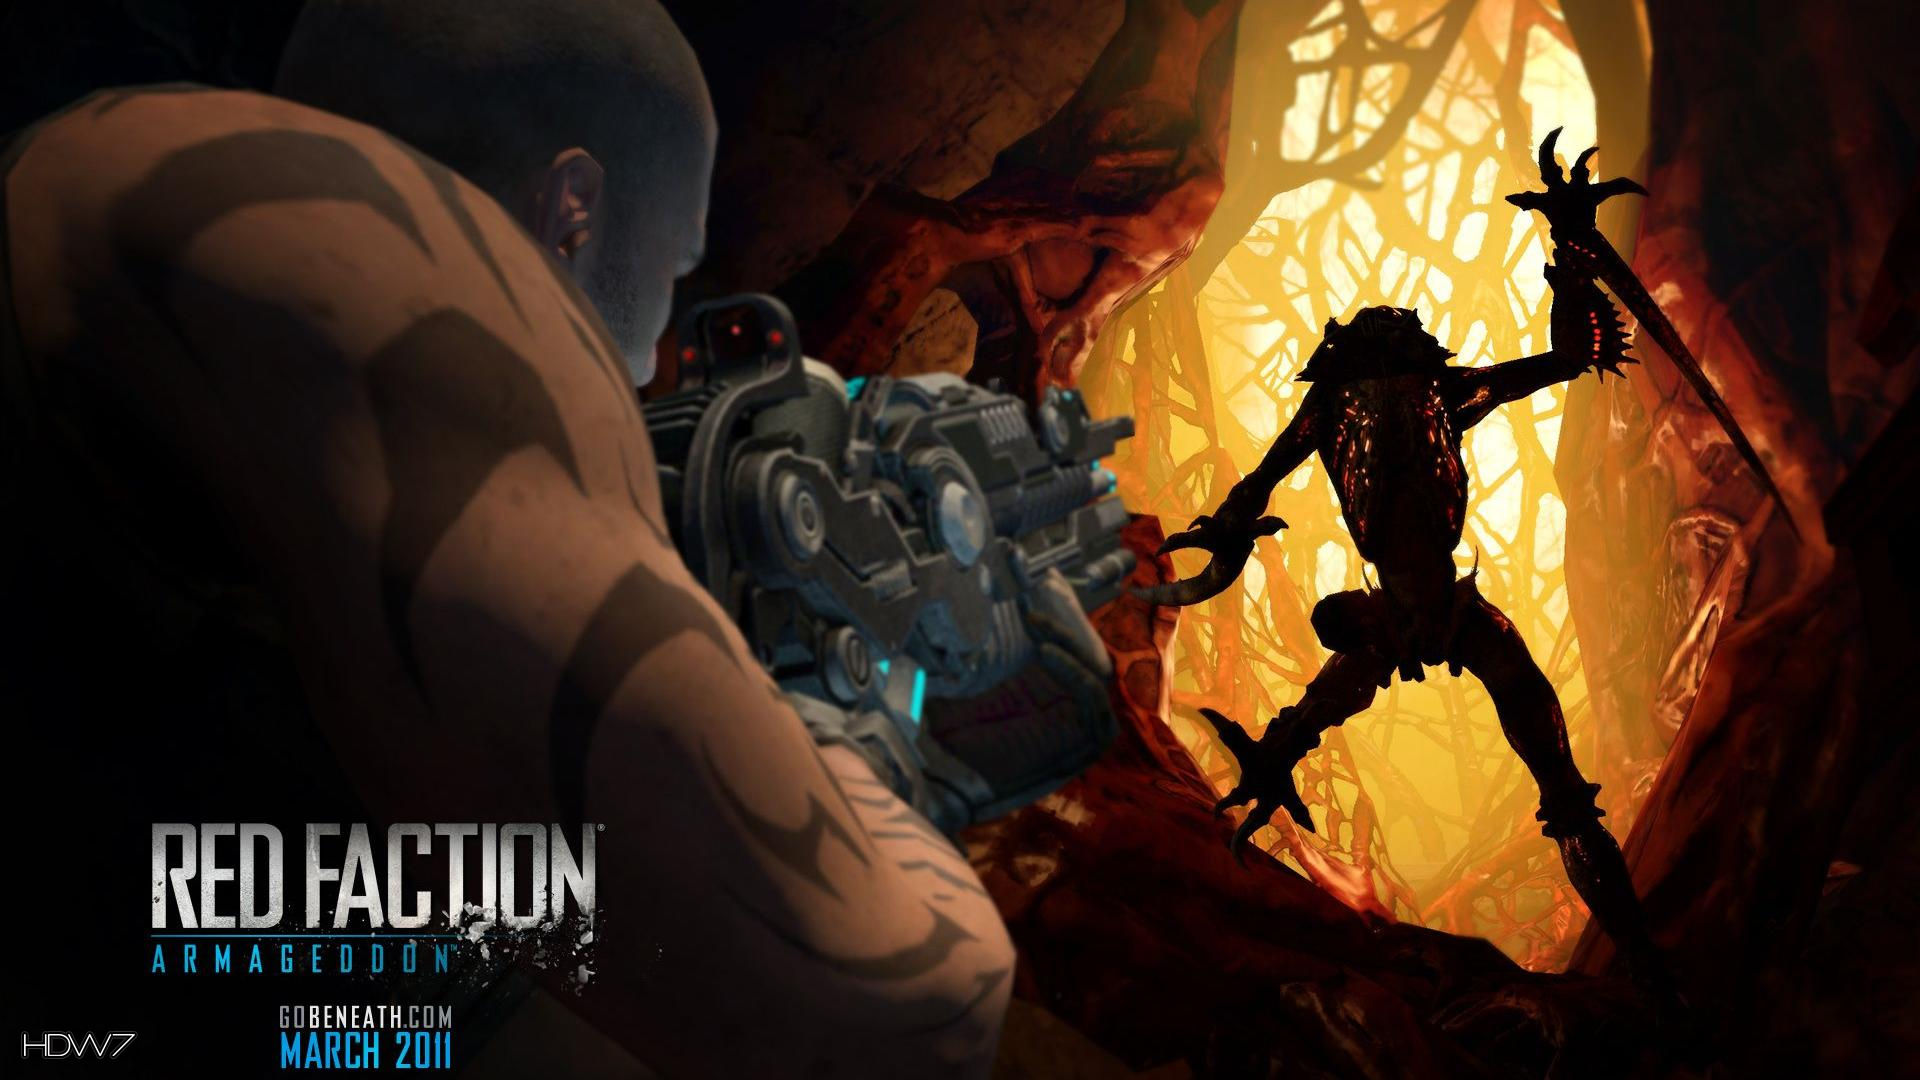 Red Faction Armageddon Darius Aiming At An Alien Widescreen Hd Wallpaper